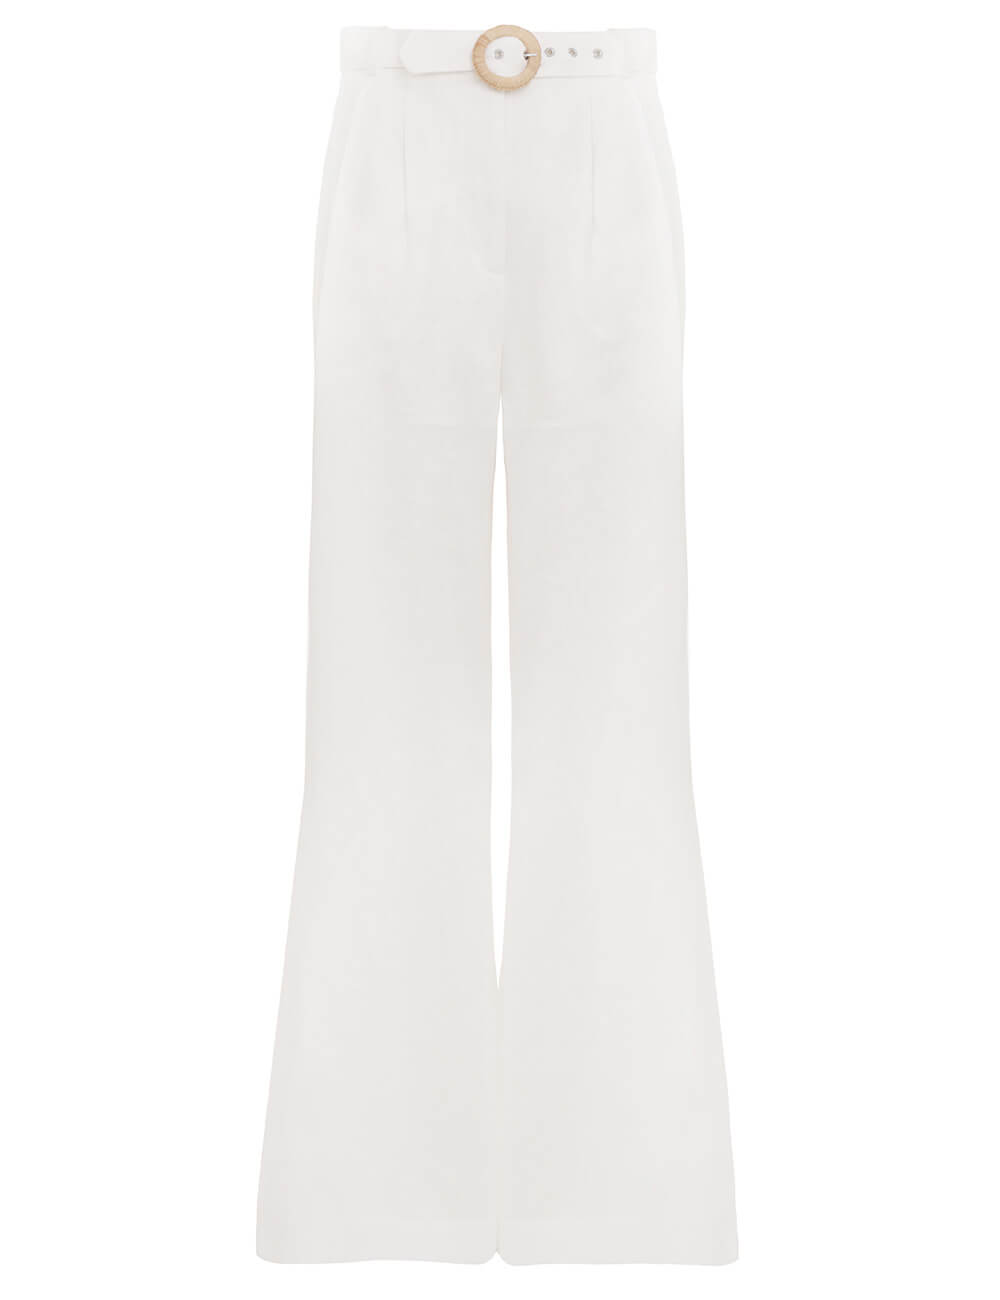 Honour Slouch Pant